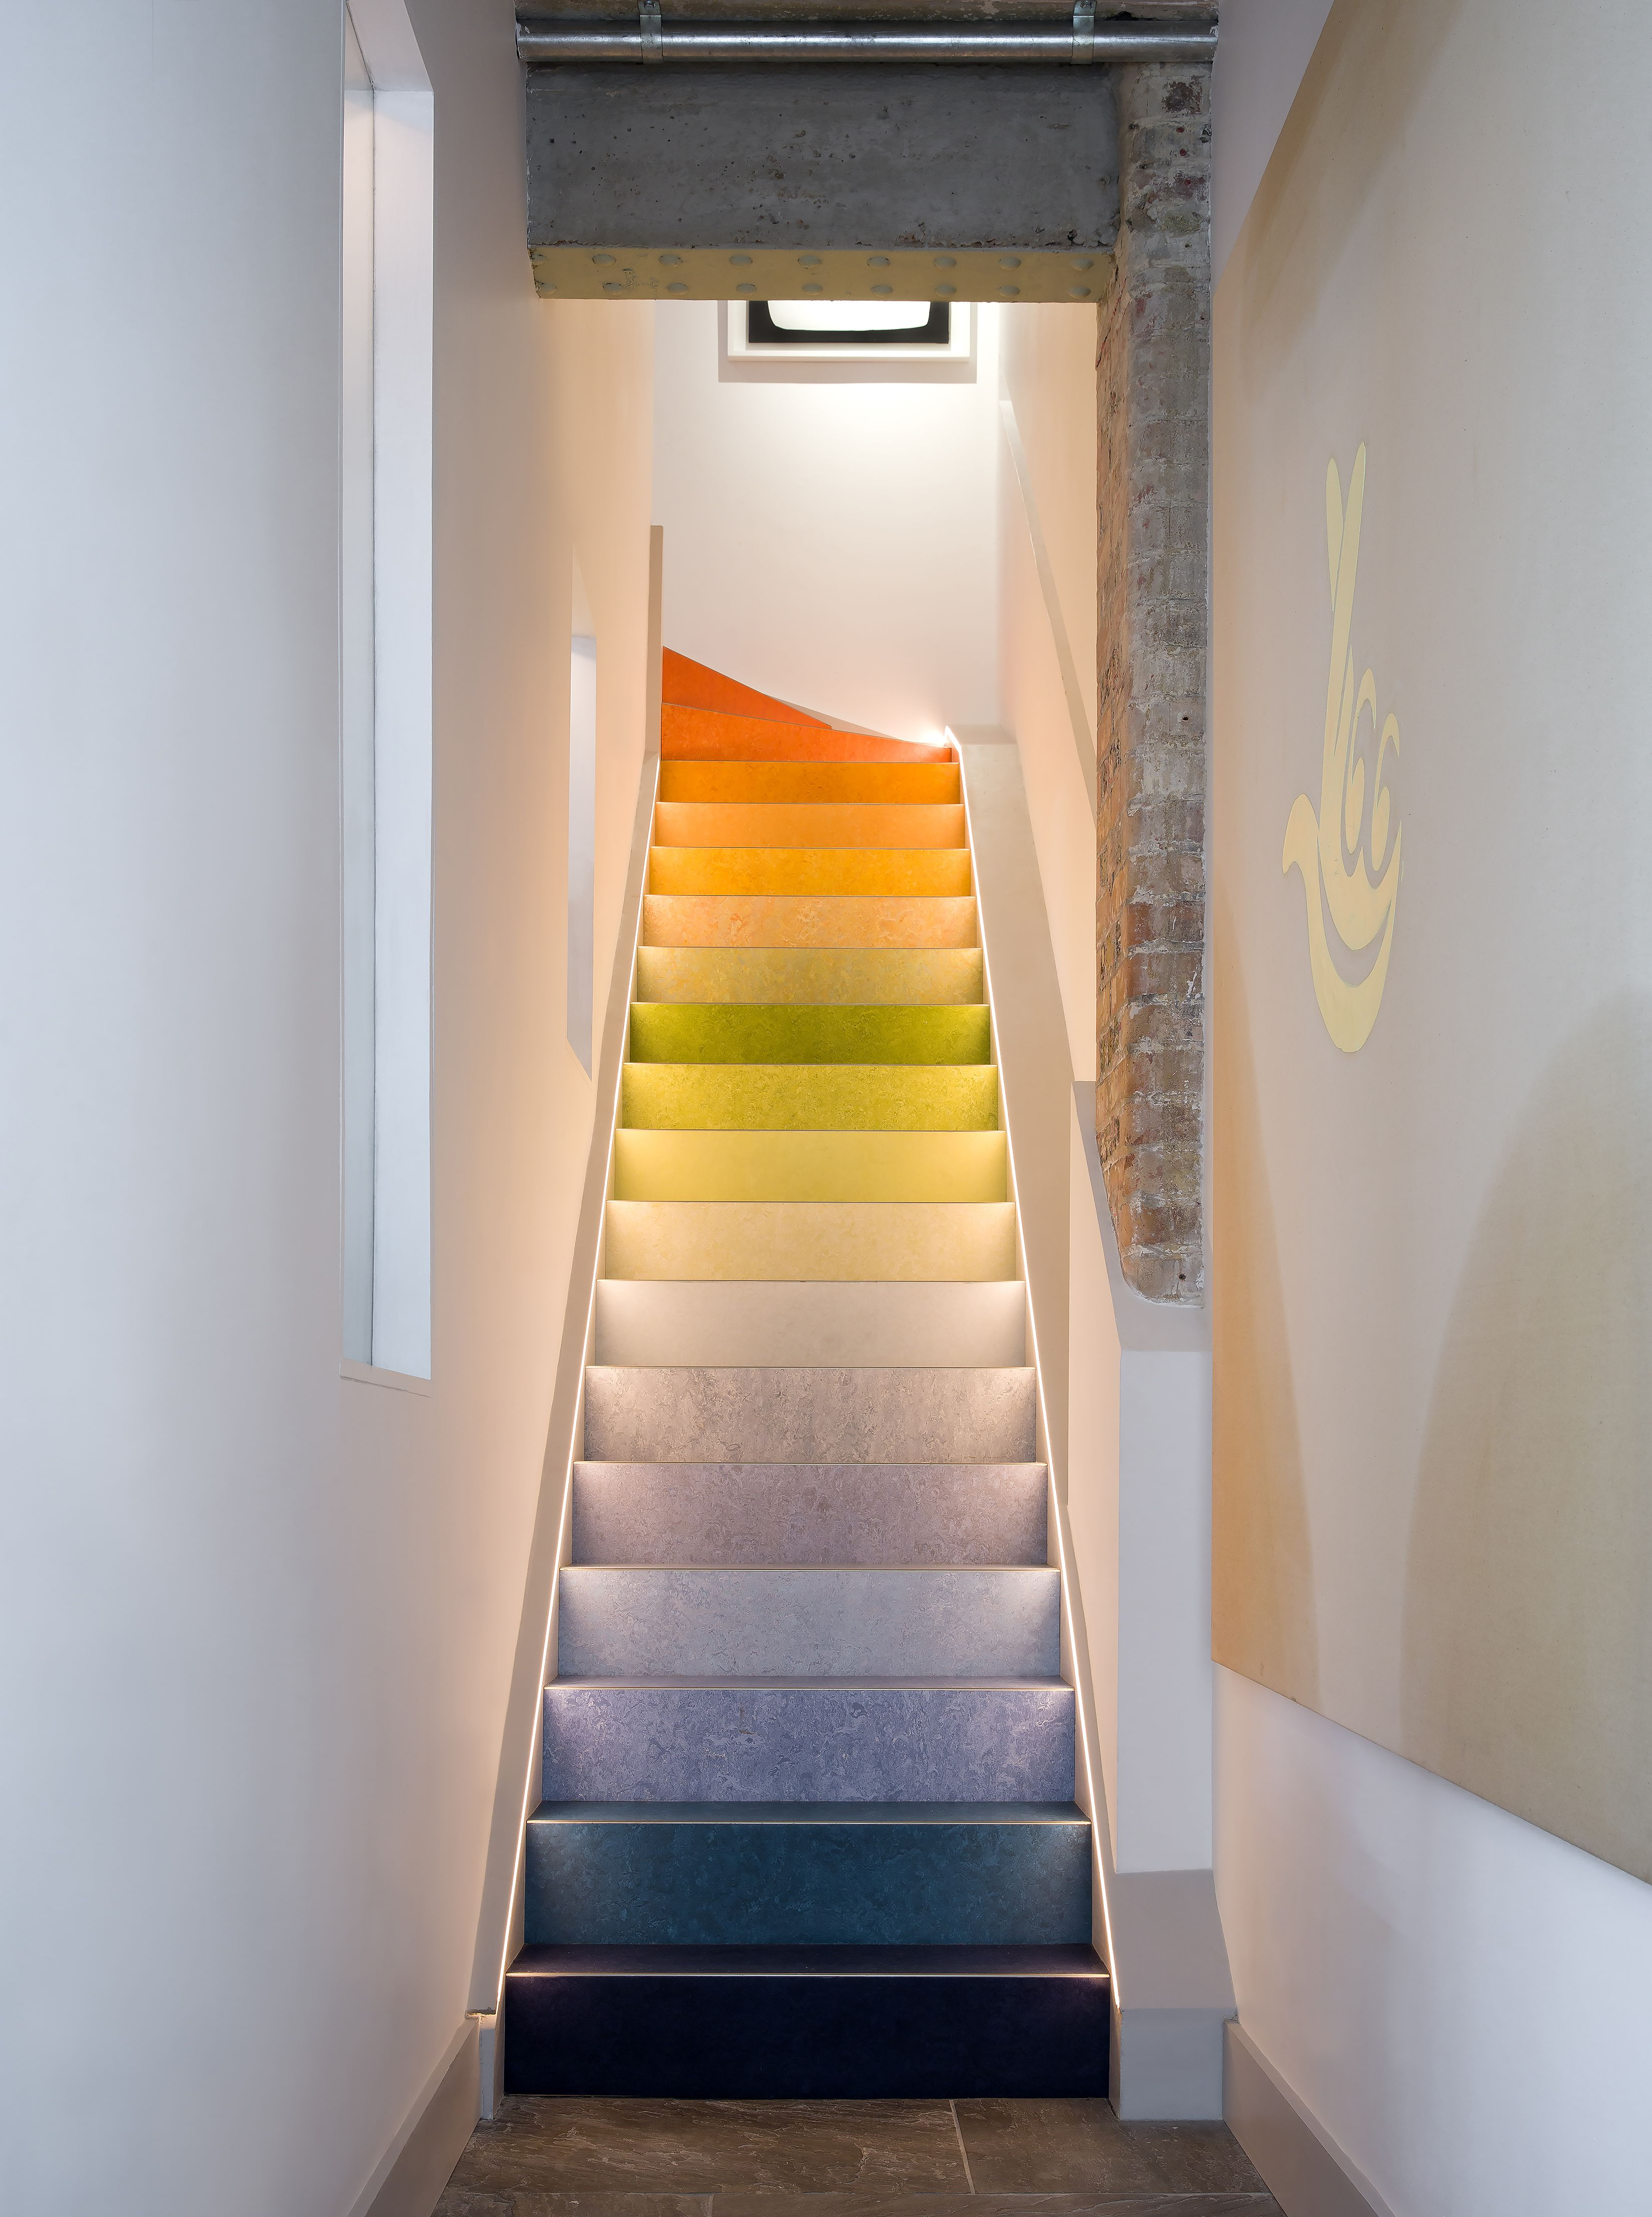 Colour Gradient Linoleum Stairs Industrial Mews House By Cooley U0026 Rose